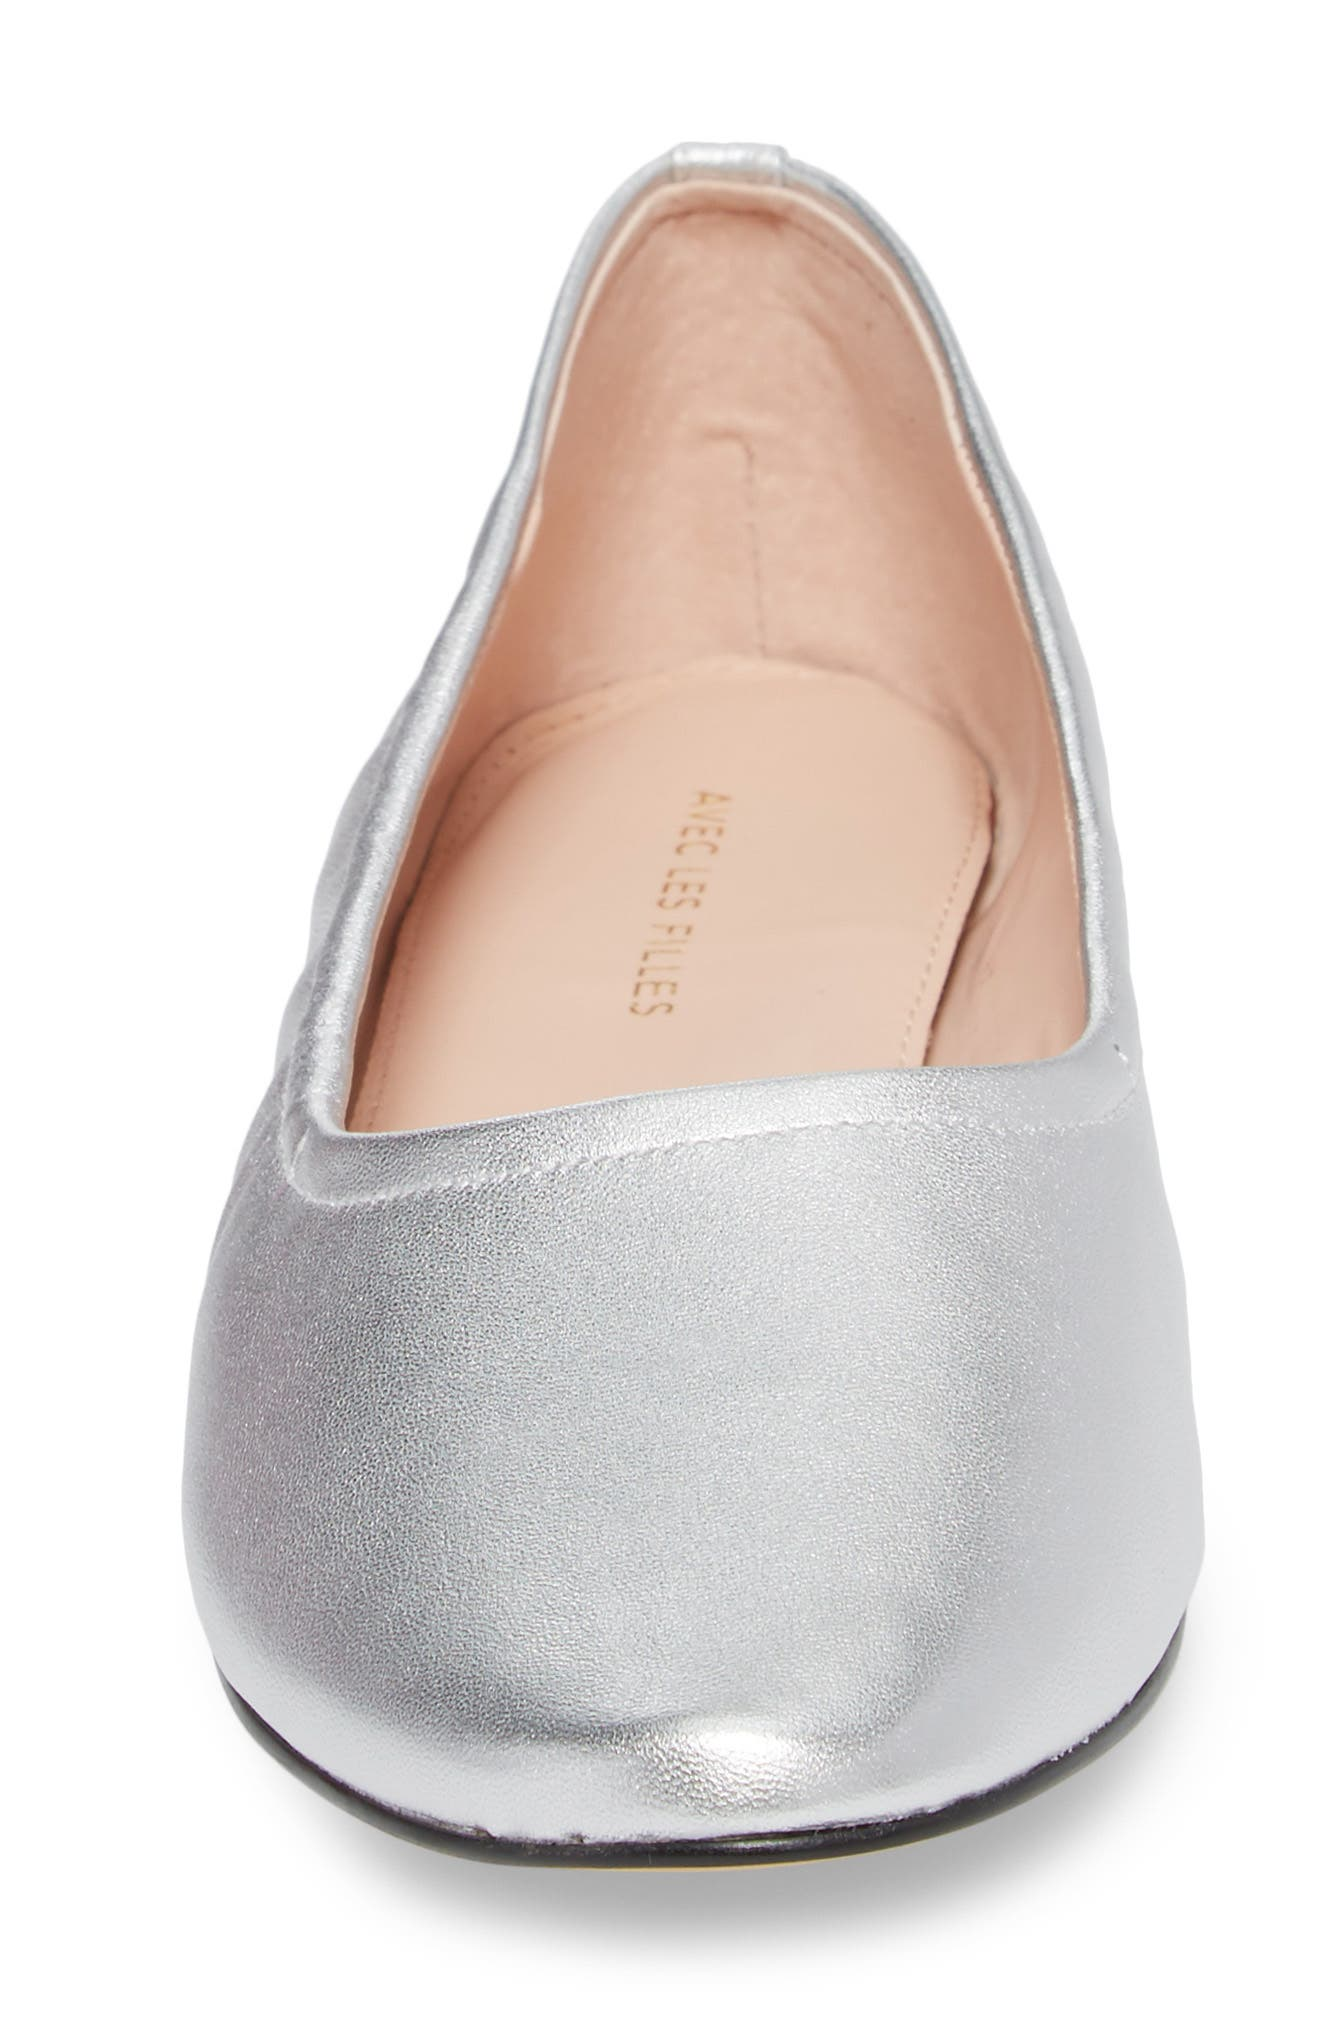 Myrina Ballet Flat,                             Alternate thumbnail 4, color,                             Silver Leather